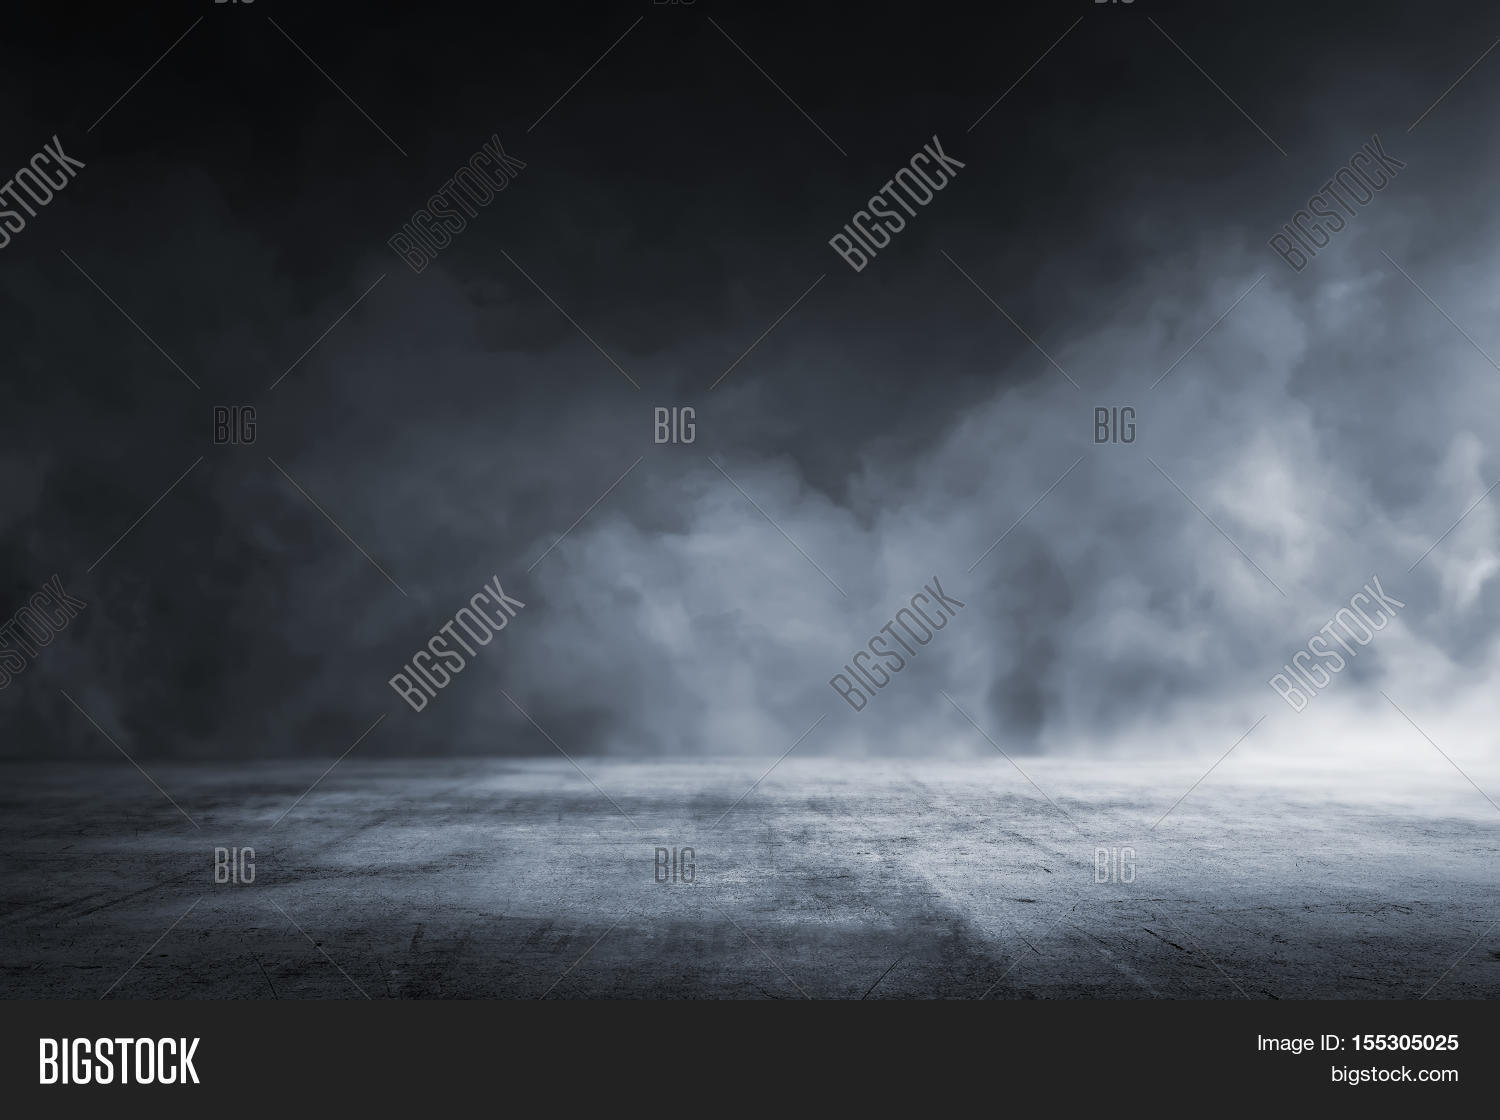 Dark Concrete Floor Texture texture dark concrete floor stock photo & stock images | bigstock